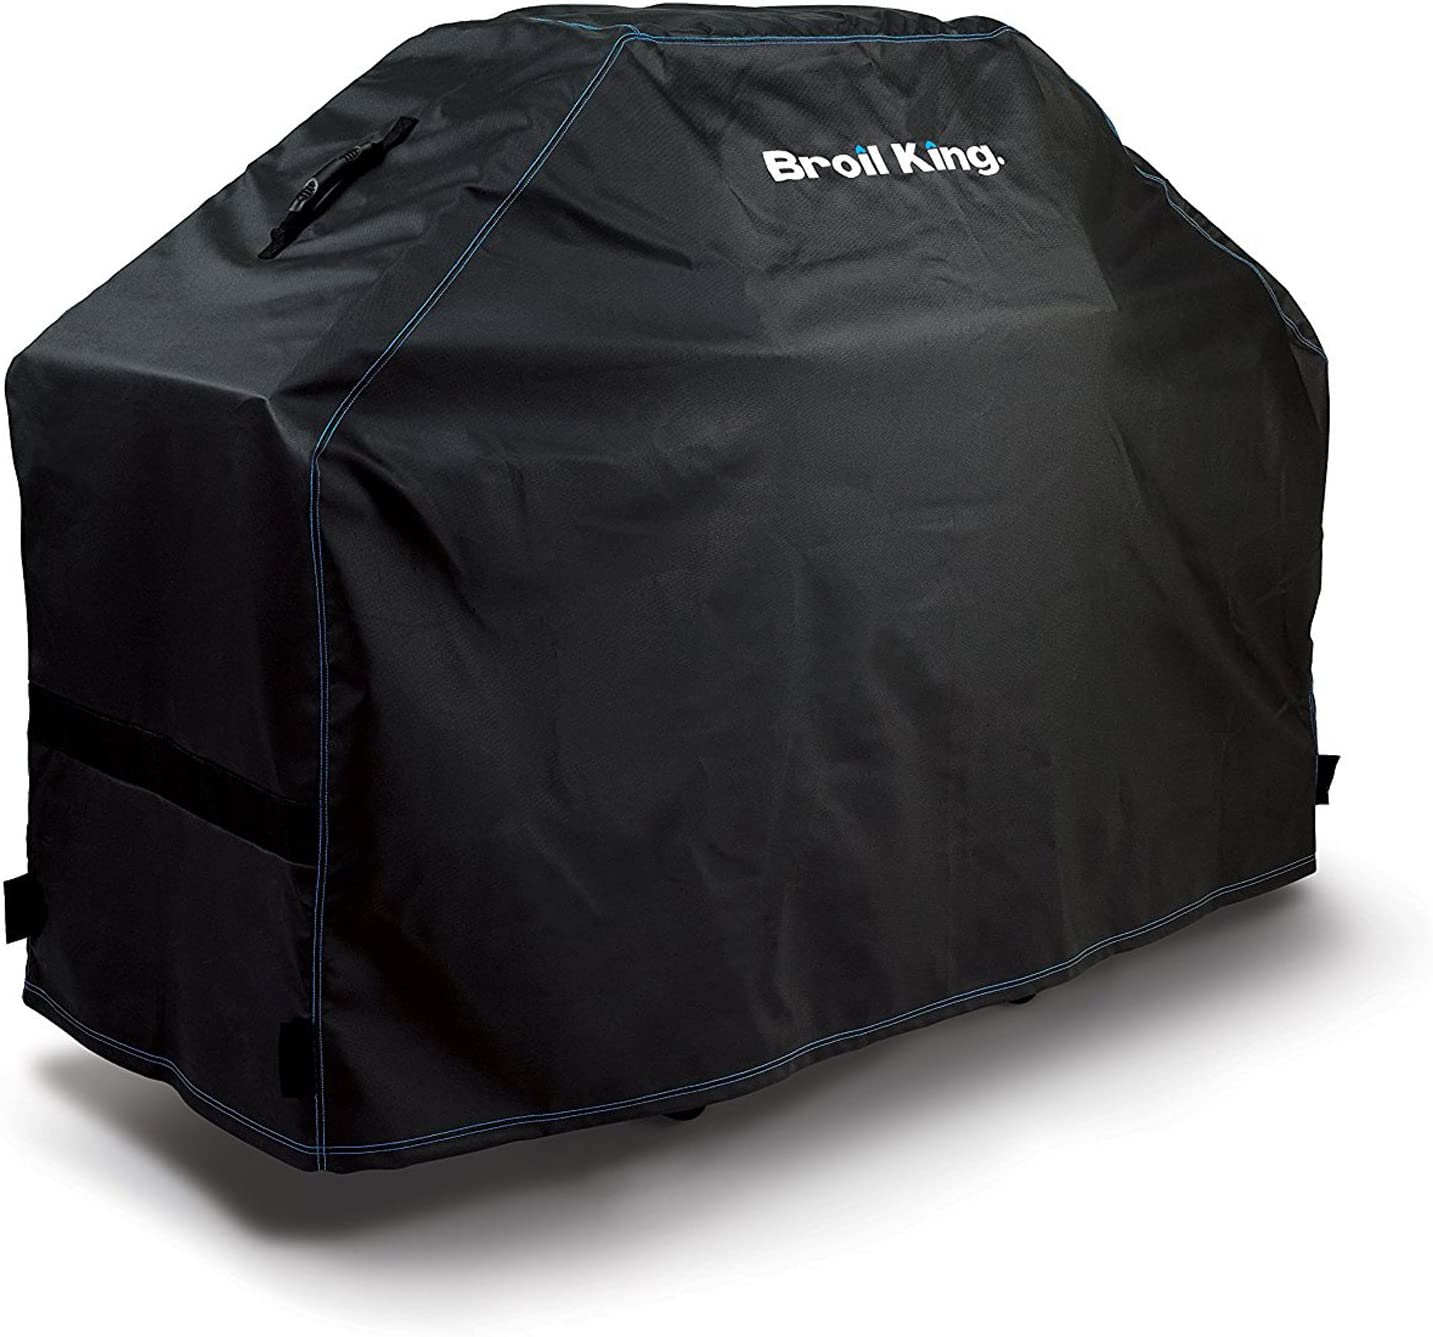 "Broil King 58"" Premium Exact Fit Cover for Baron 400-Series BBQ Grills"